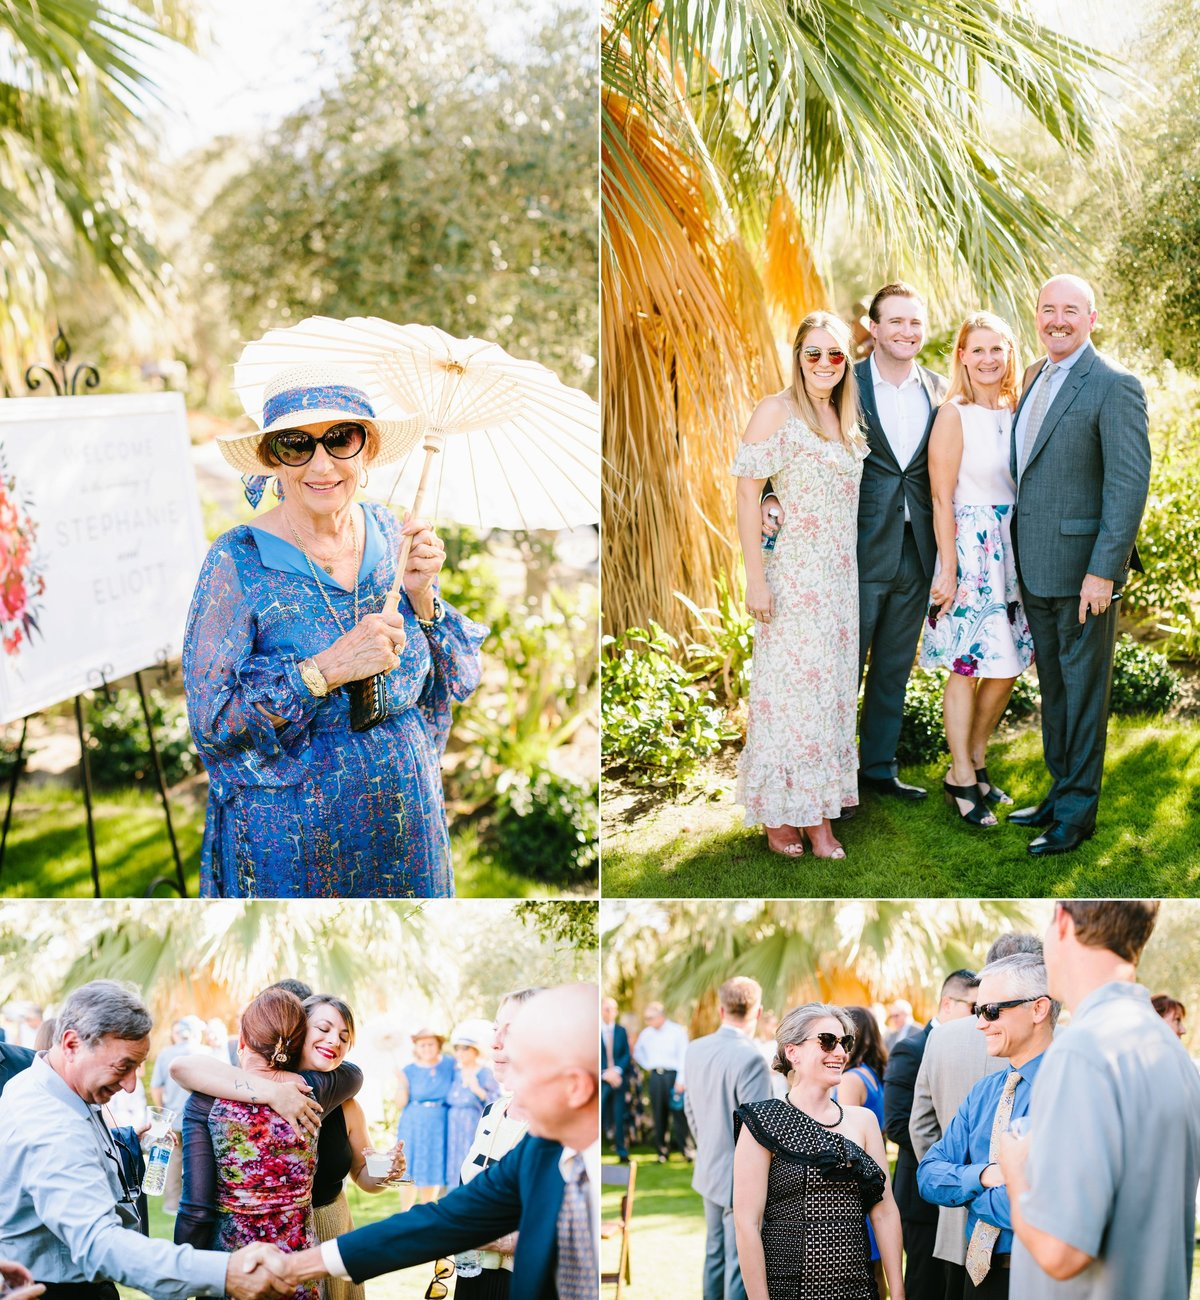 Best California Wedding Photographer-Jodee Debes Photography-83